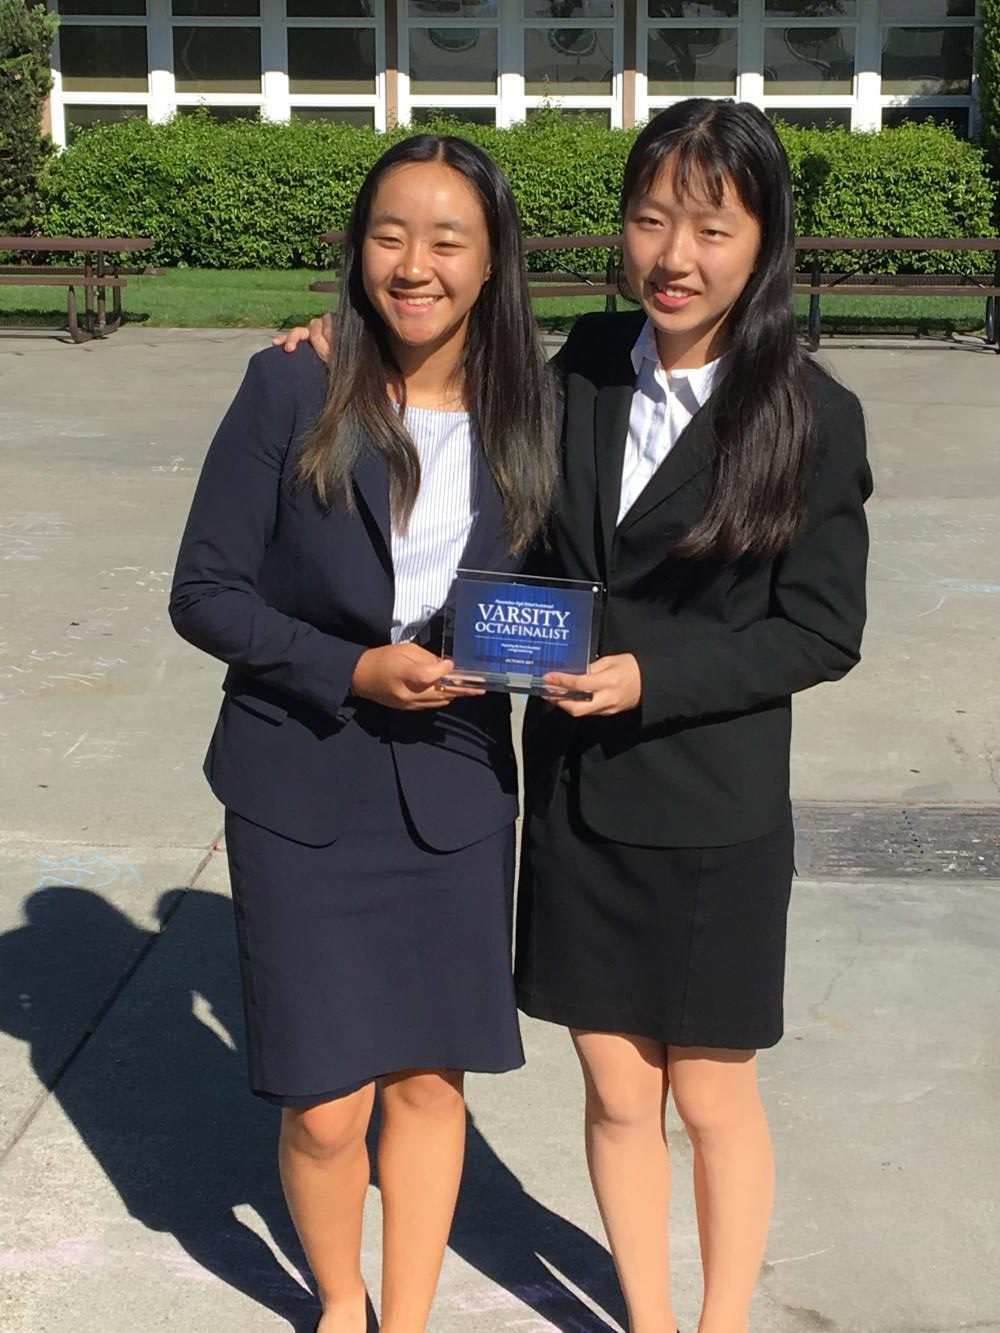 Public forum team Amanda Cheung (10) and Annie Ma (10) pose with their varsity octofinalist award from the Presentation Invitational. Harker had 15 public forum teams competing in the tournament.